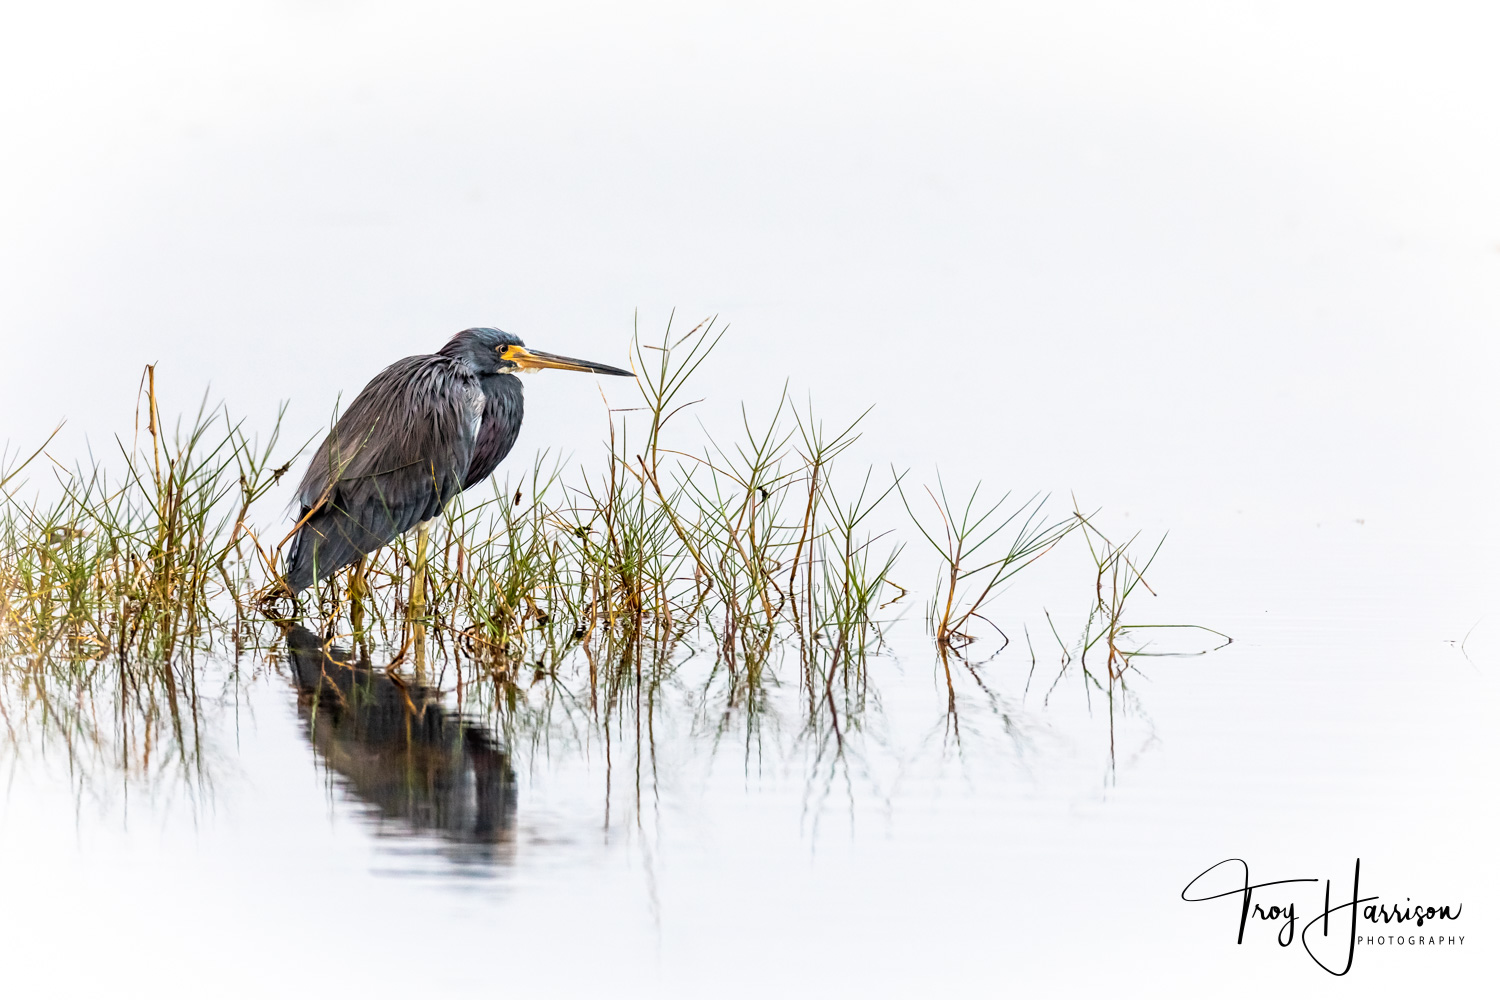 1 - Tri-Colored Heron, Everglades, Nov. 2018, img 480.jpg